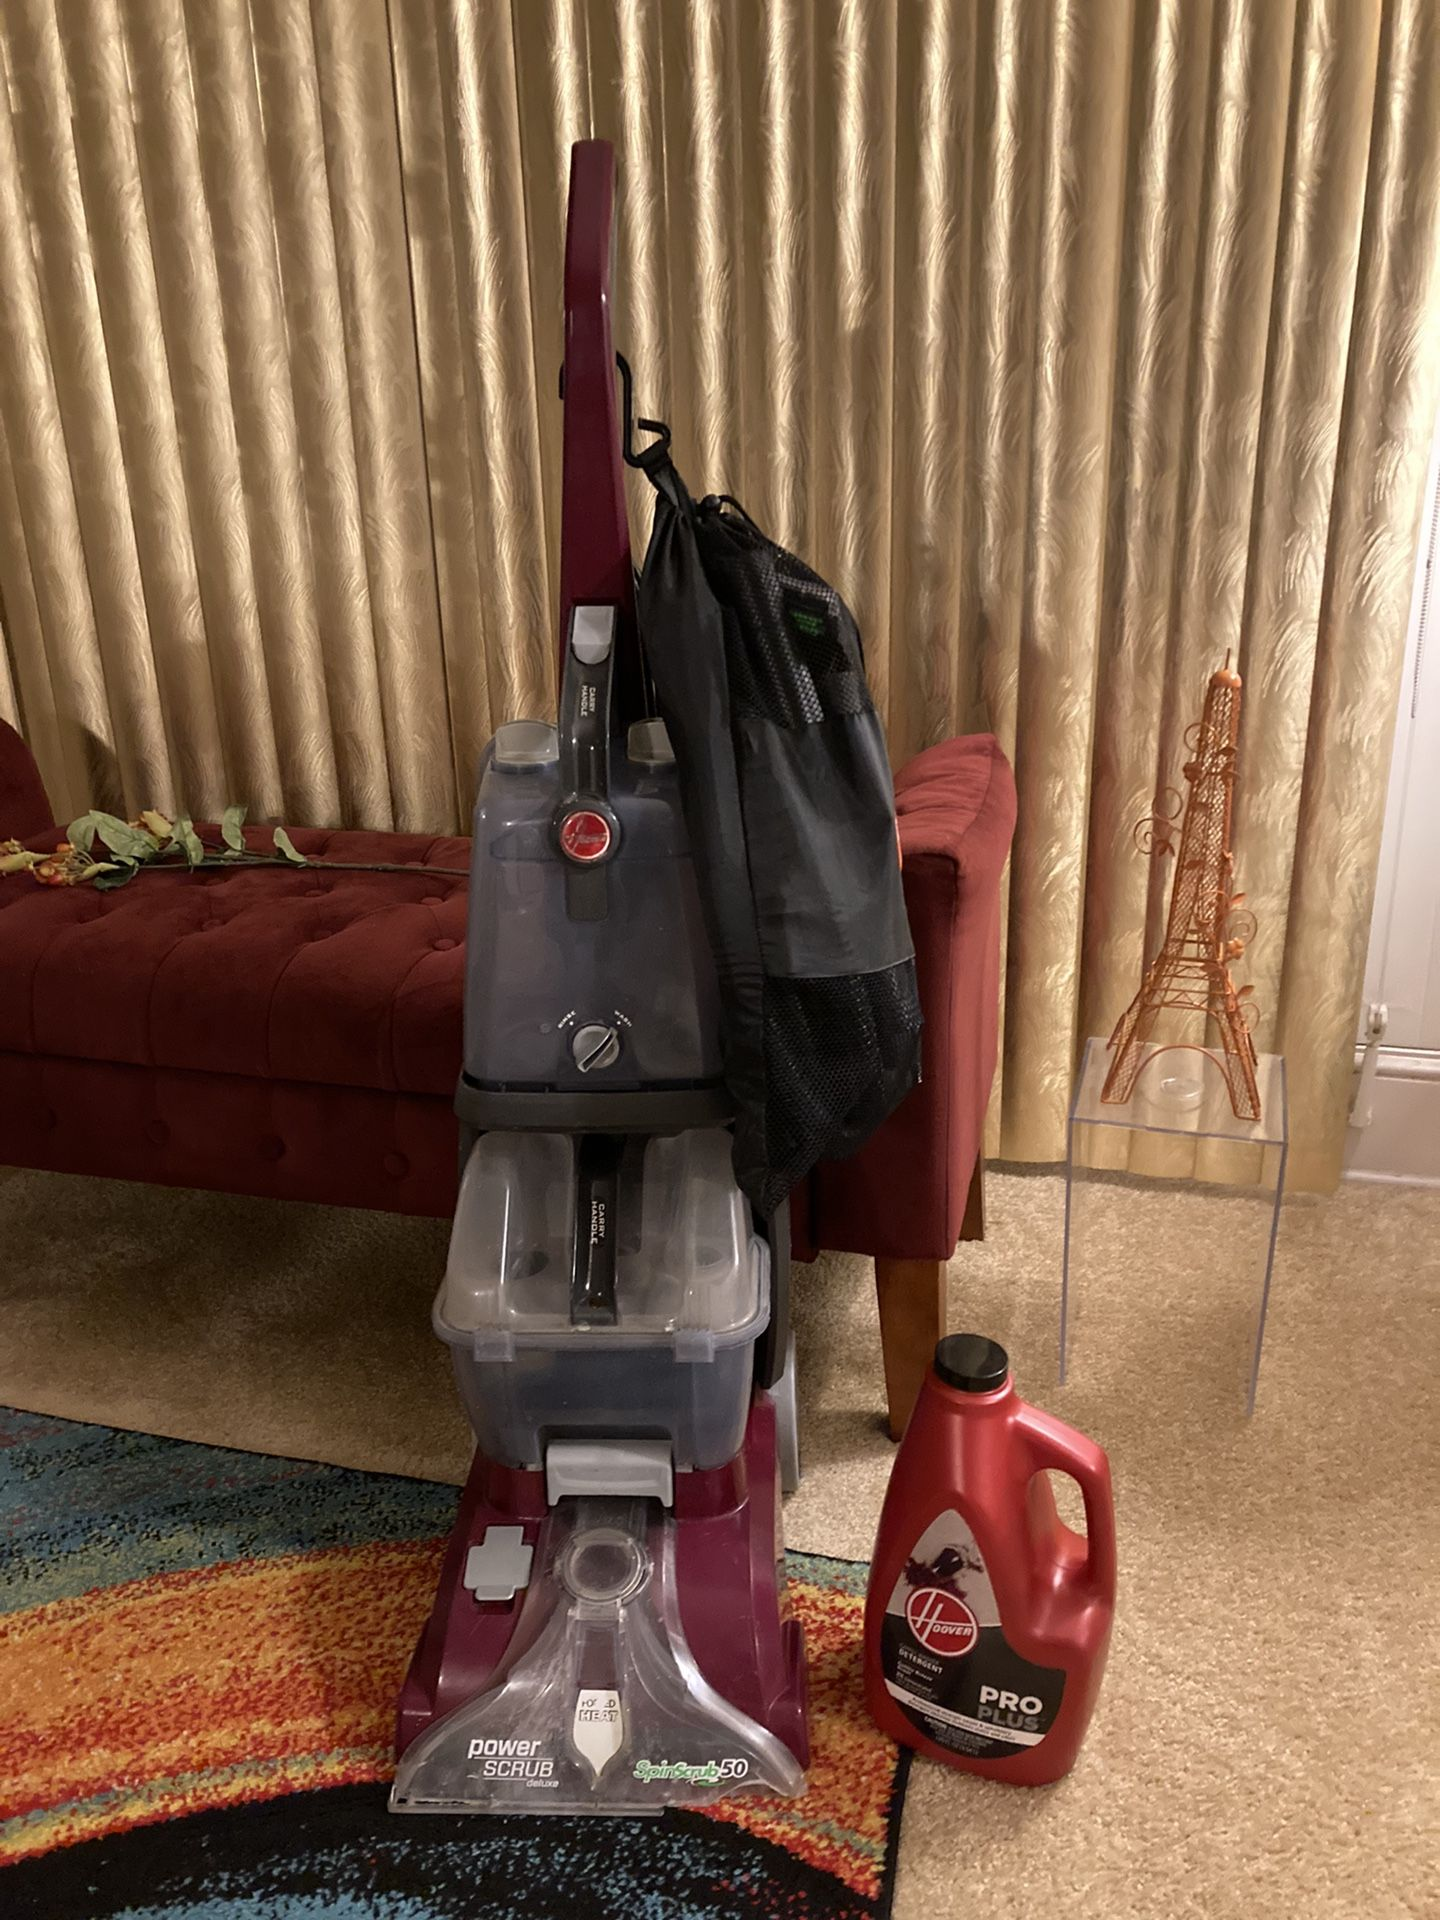 Hoover Power Scrub Deluxe Shampoo Cleaner